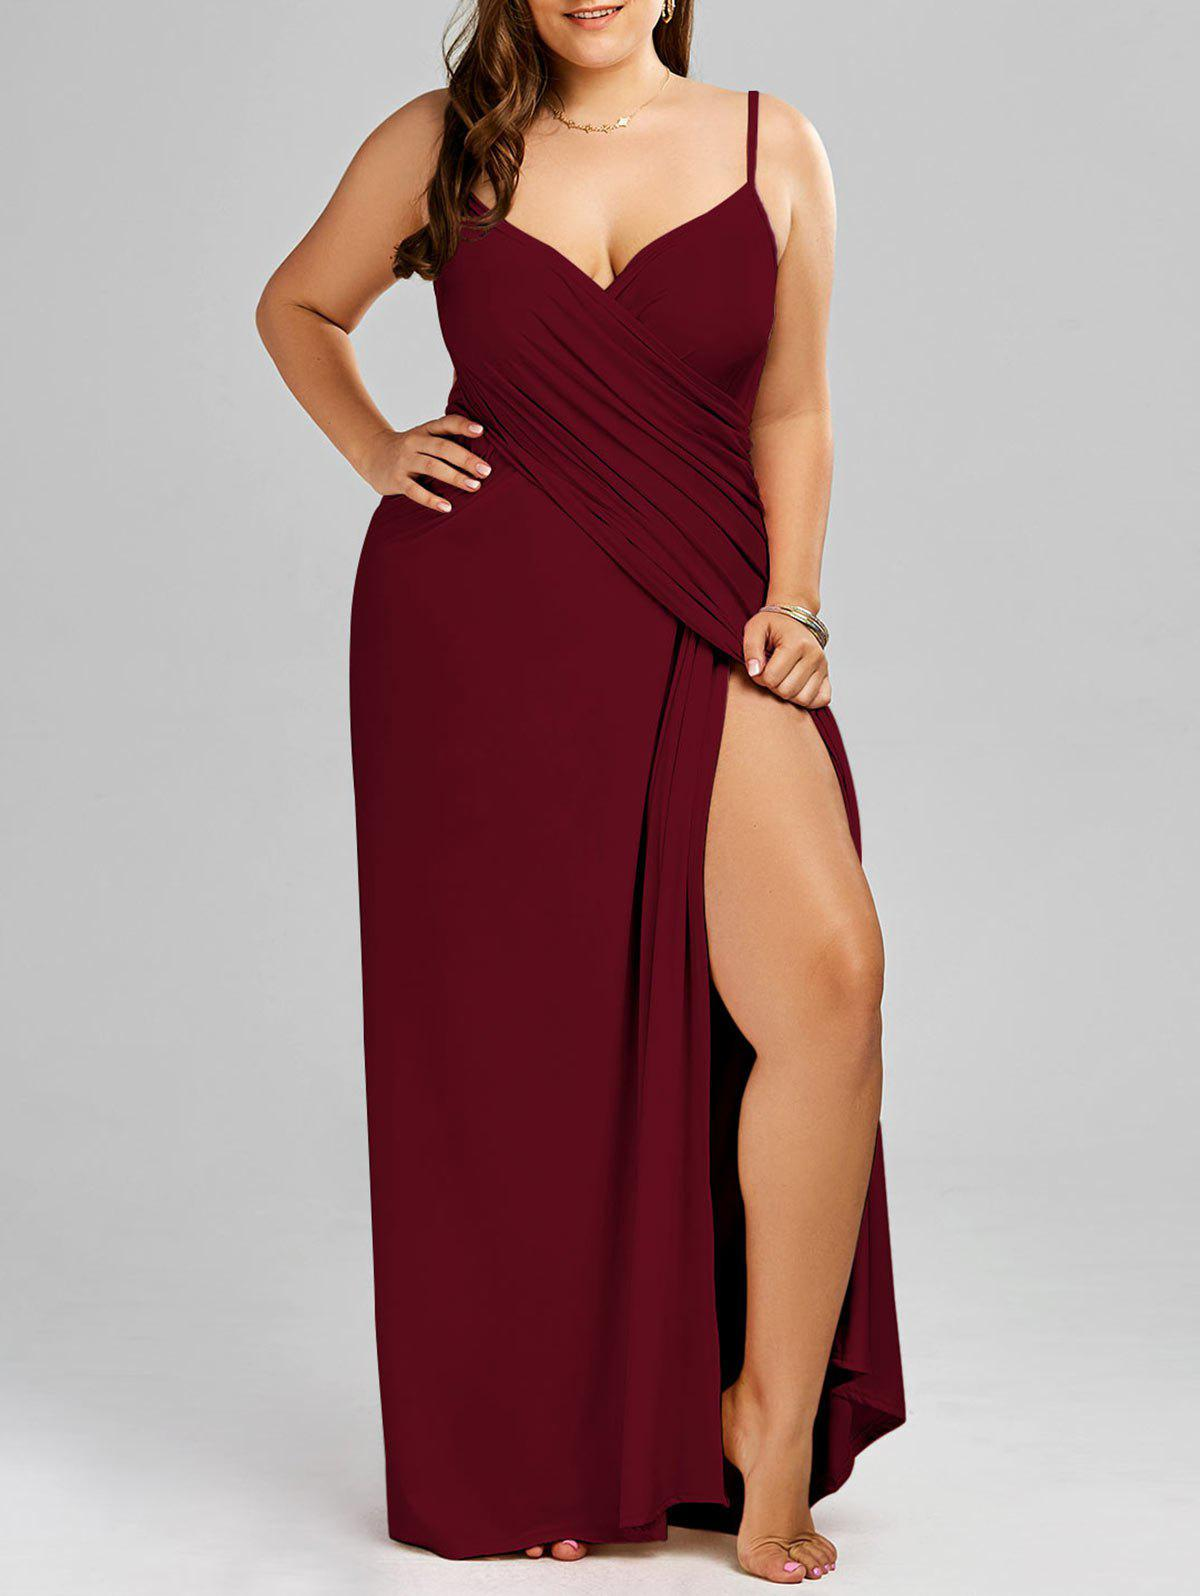 Plus Size Flowy Cover Up Wrap DressWOMEN<br><br>Size: 3XL; Color: WINE RED; Gender: For Women; Swimwear Type: Cover-Up; Material: Polyester,Spandex; Pattern Type: Solid; Waist: Natural; Weight: 0.3000kg; Package Contents: 1 x Dress;